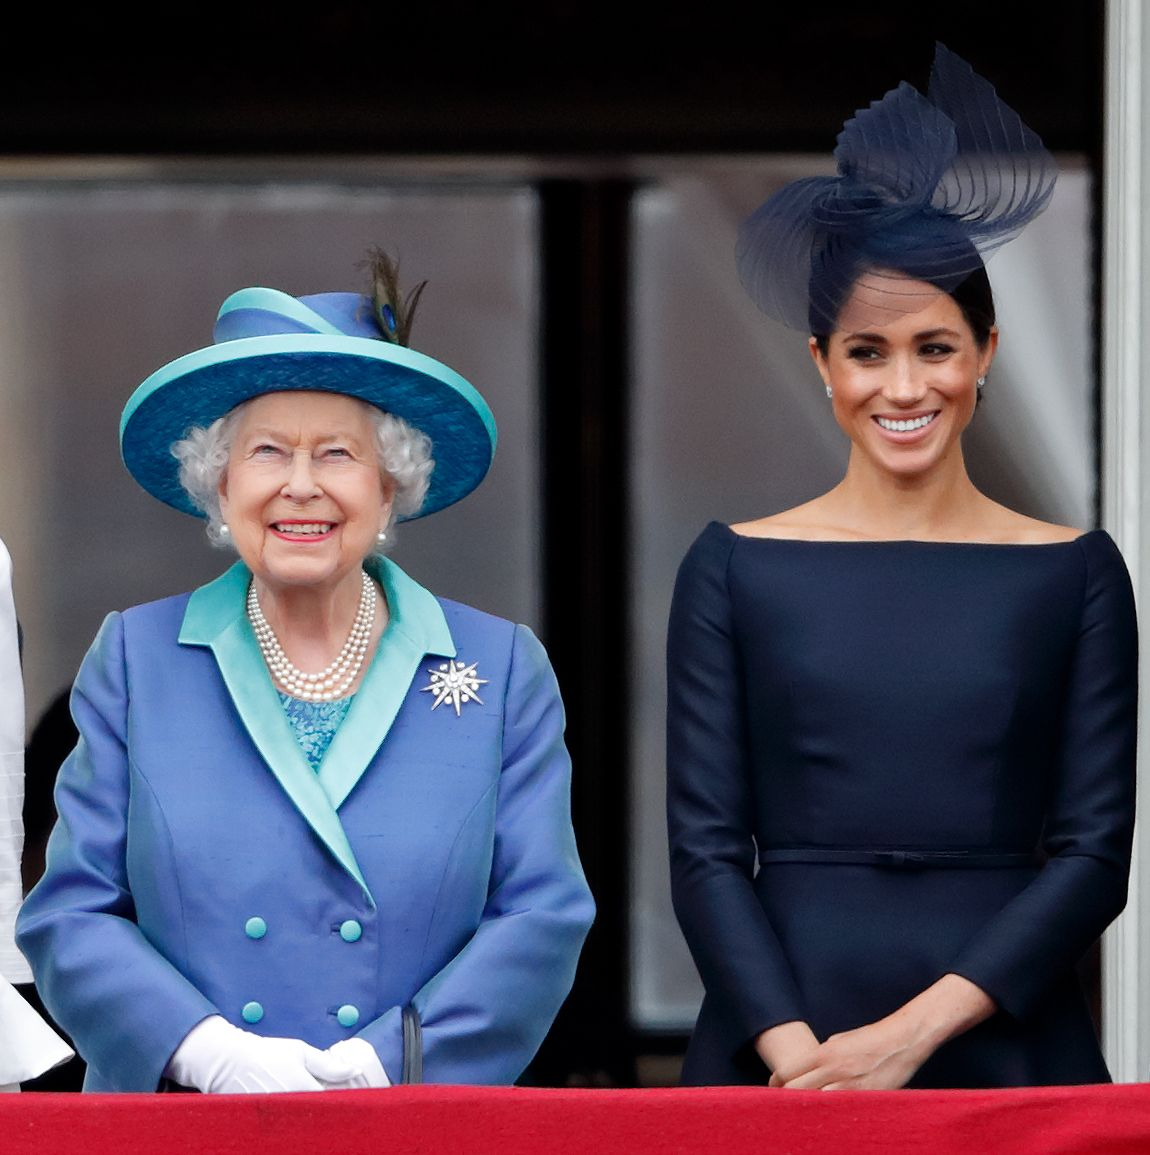 The Queen 'Likes' Meghan Markle According to Historian